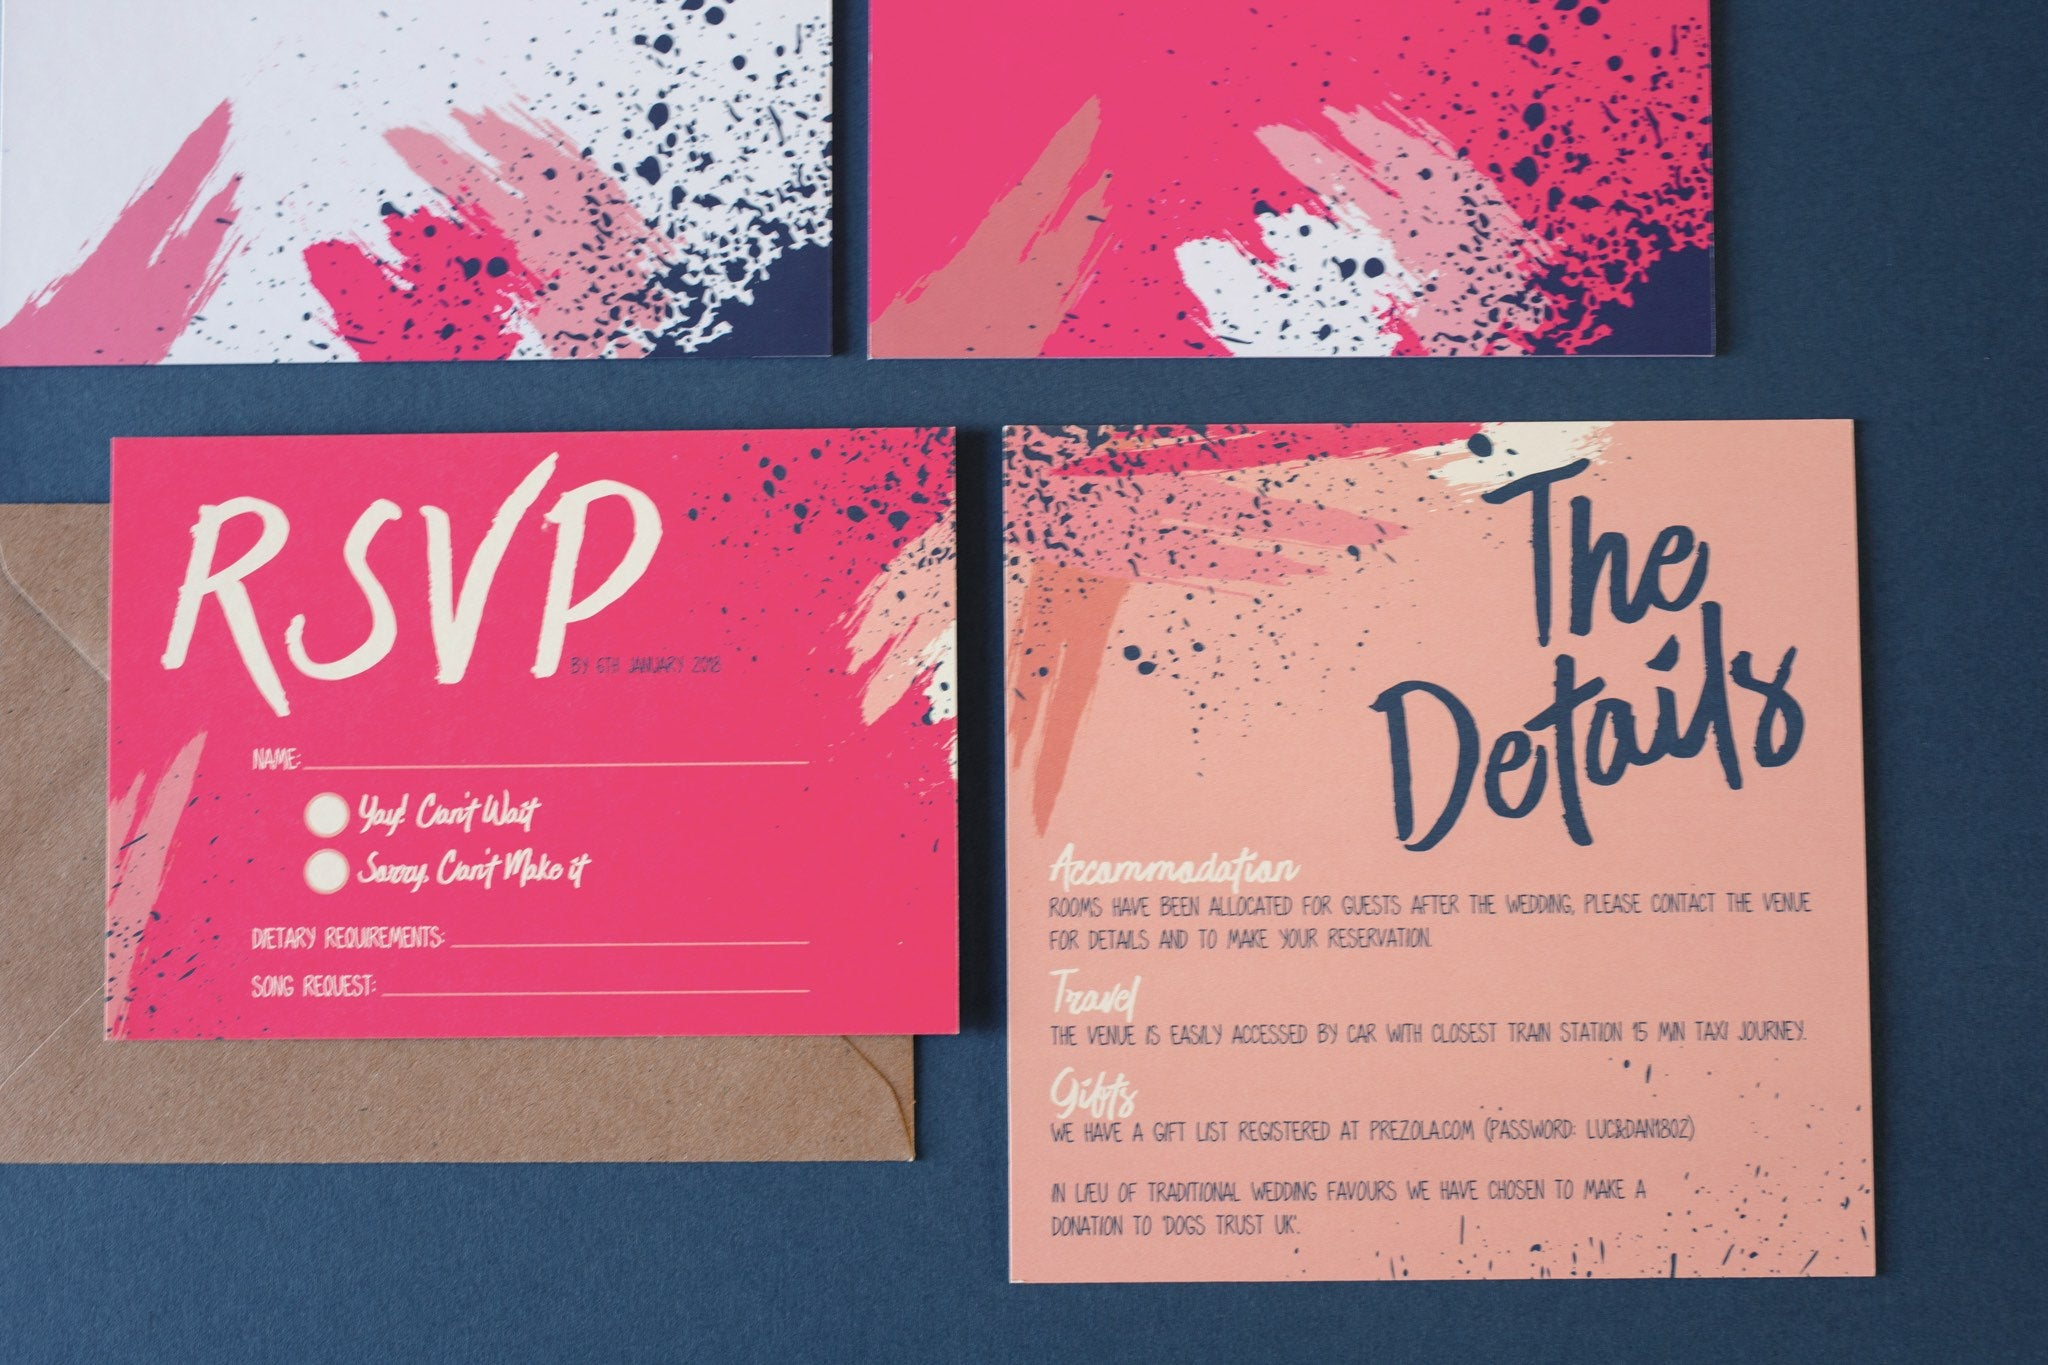 RSVP and details card, wedding stationery in pinks and peaches with Kraft brown envelope.